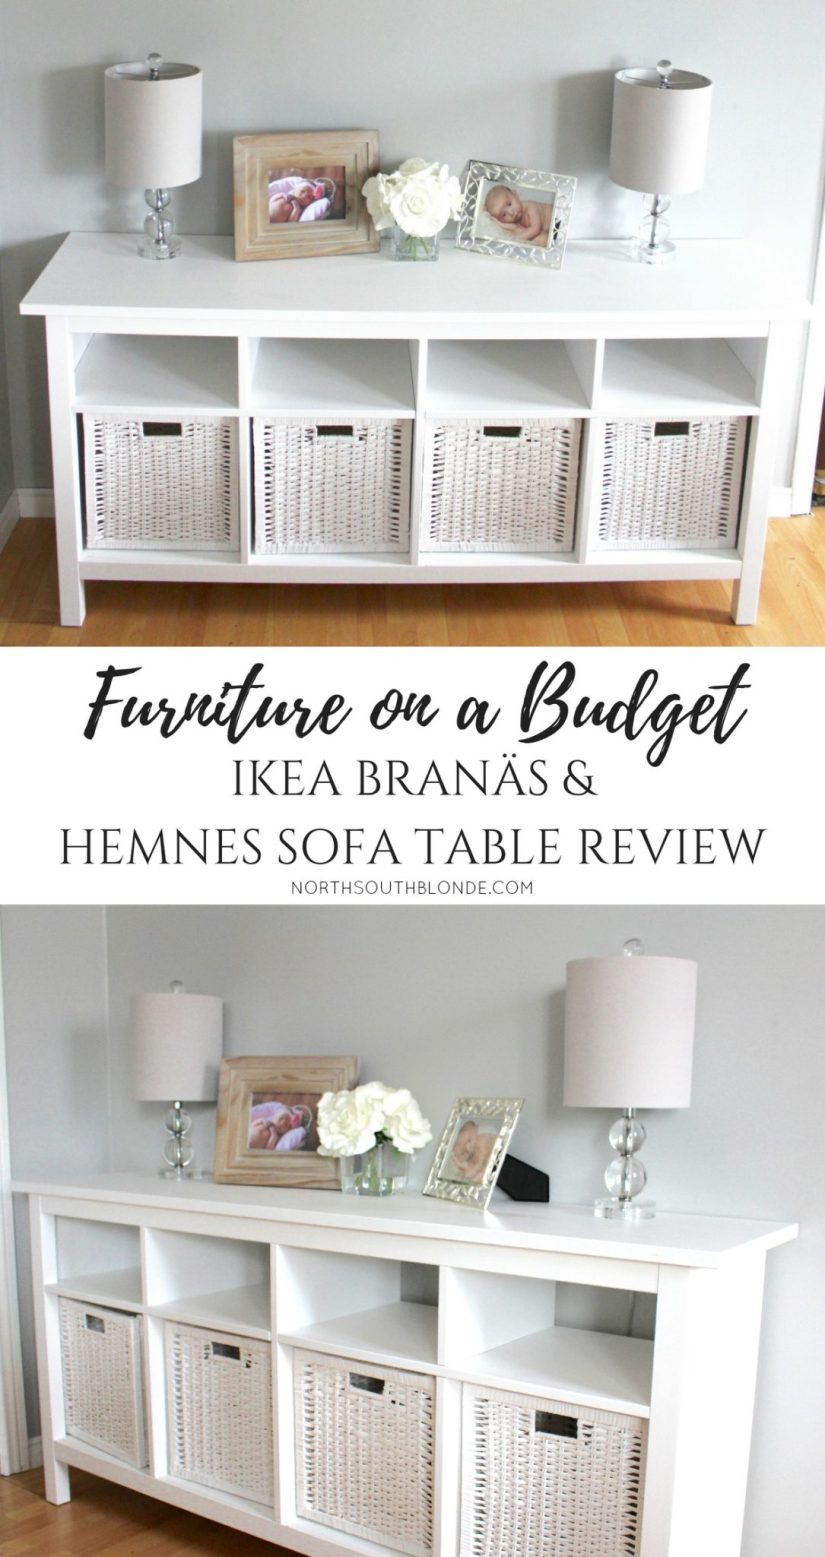 IKEA BRANÄS AND HEMNES SOFA TABLE